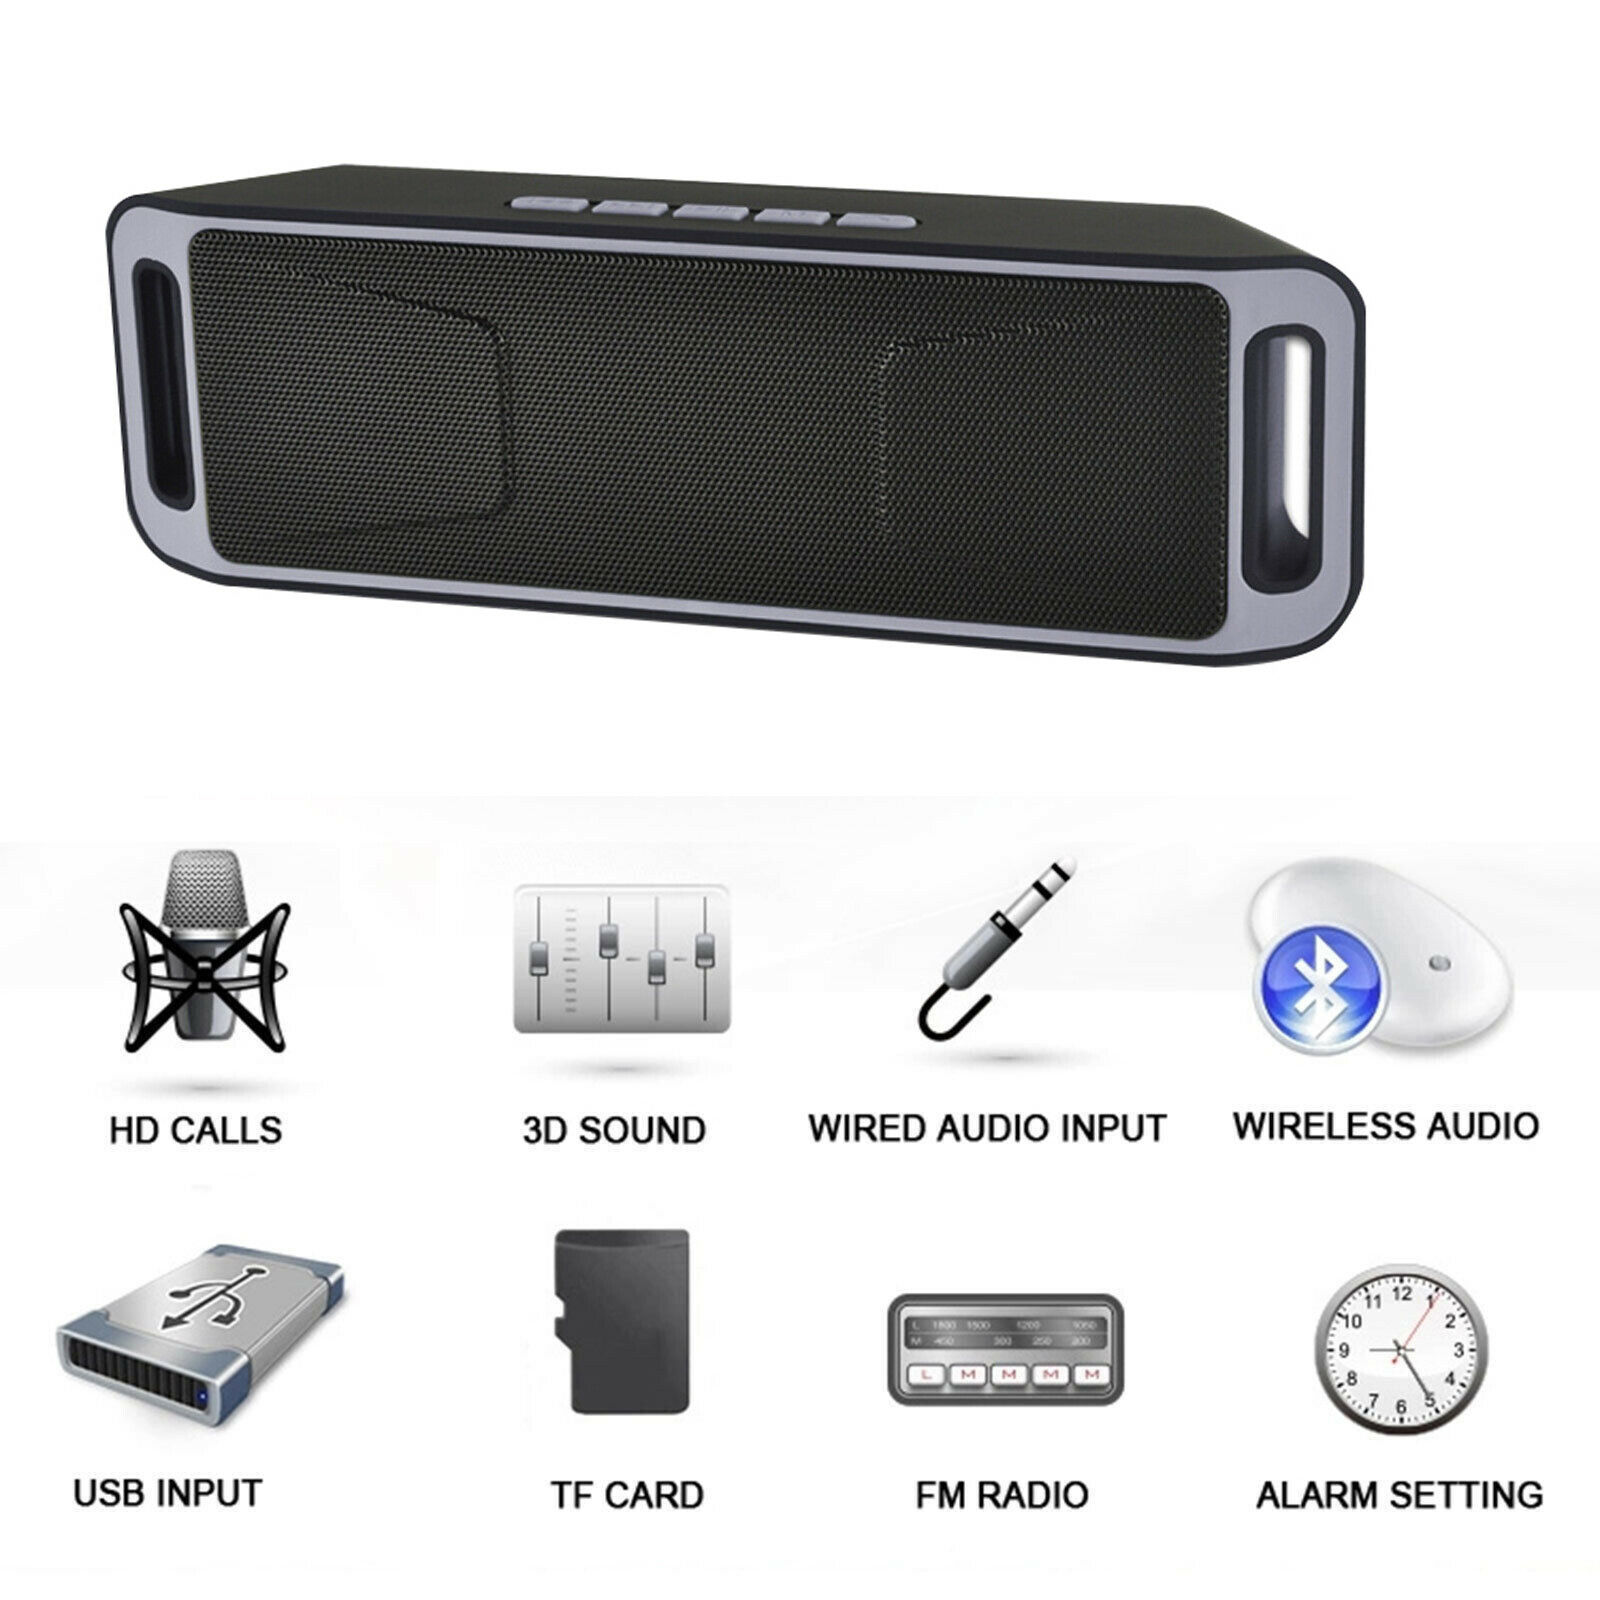 s l1600 - Nuevo Portátil Bluetooth Altavoz USB Flash FM Radio Estéreo Reproductor Soundbox